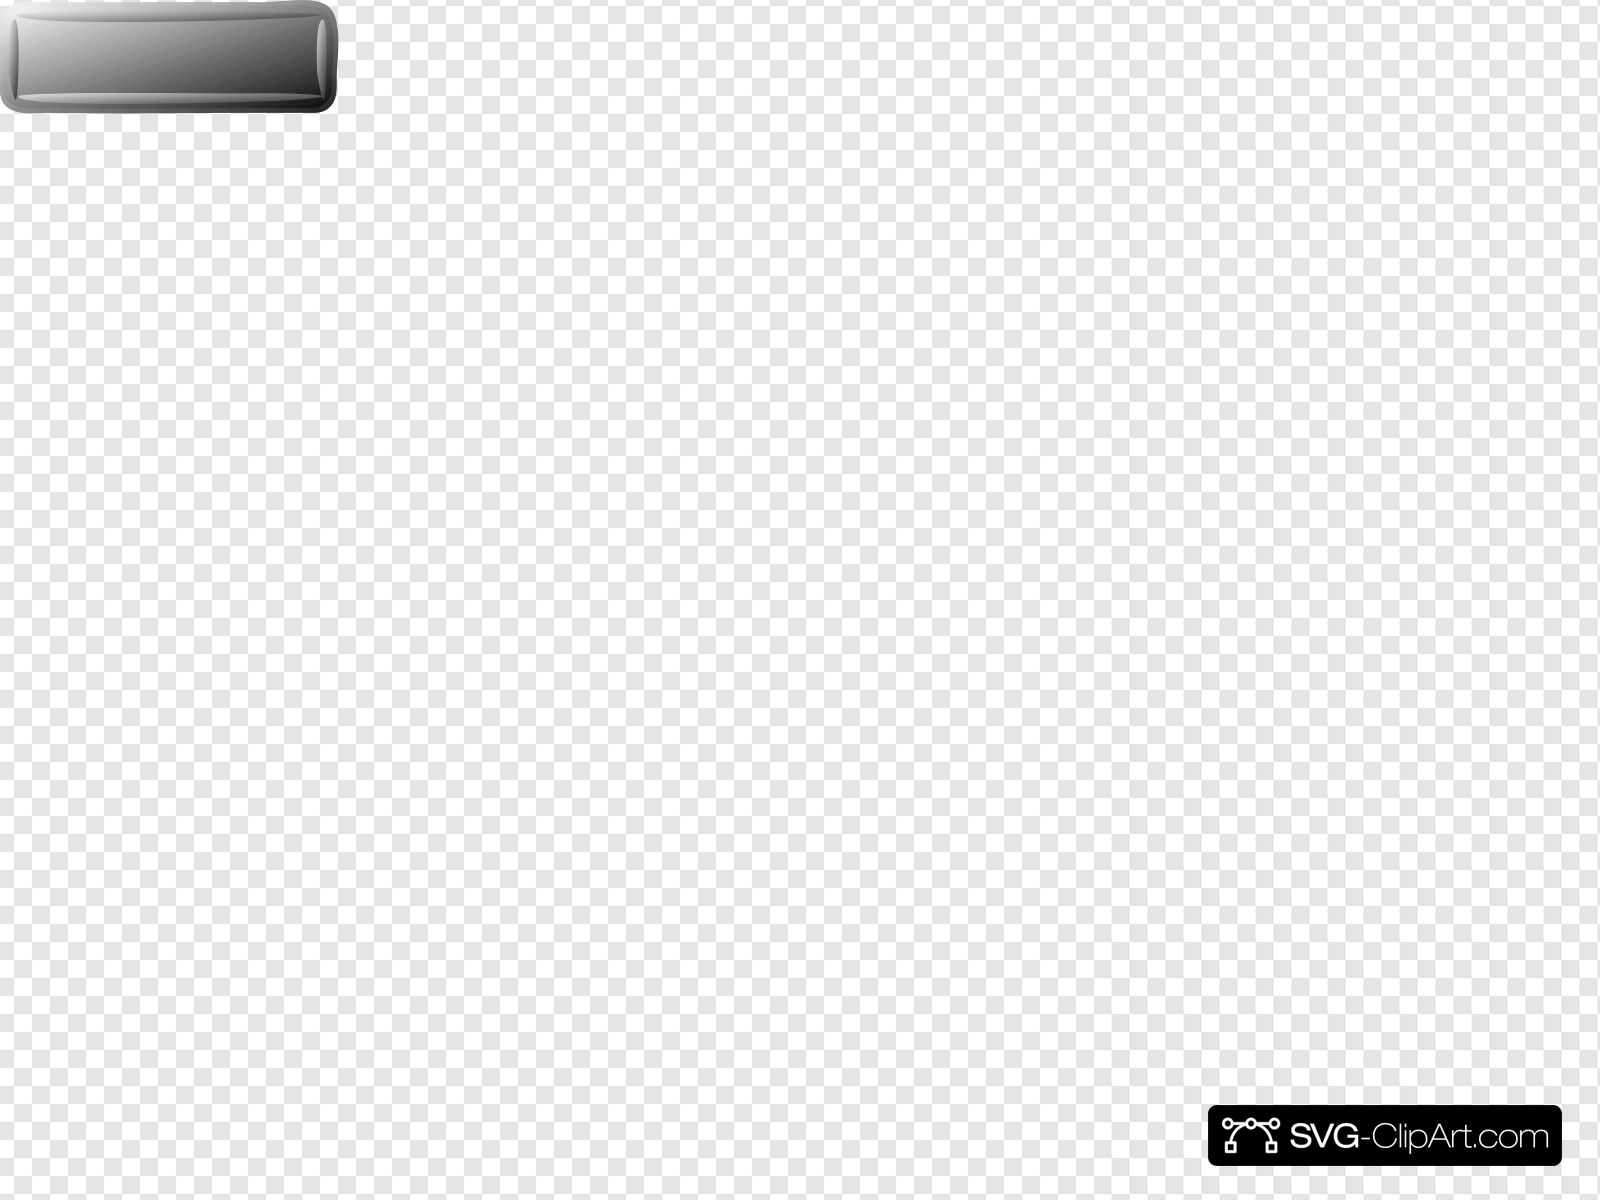 Nac Buttons Clip art, Icon and SVG.